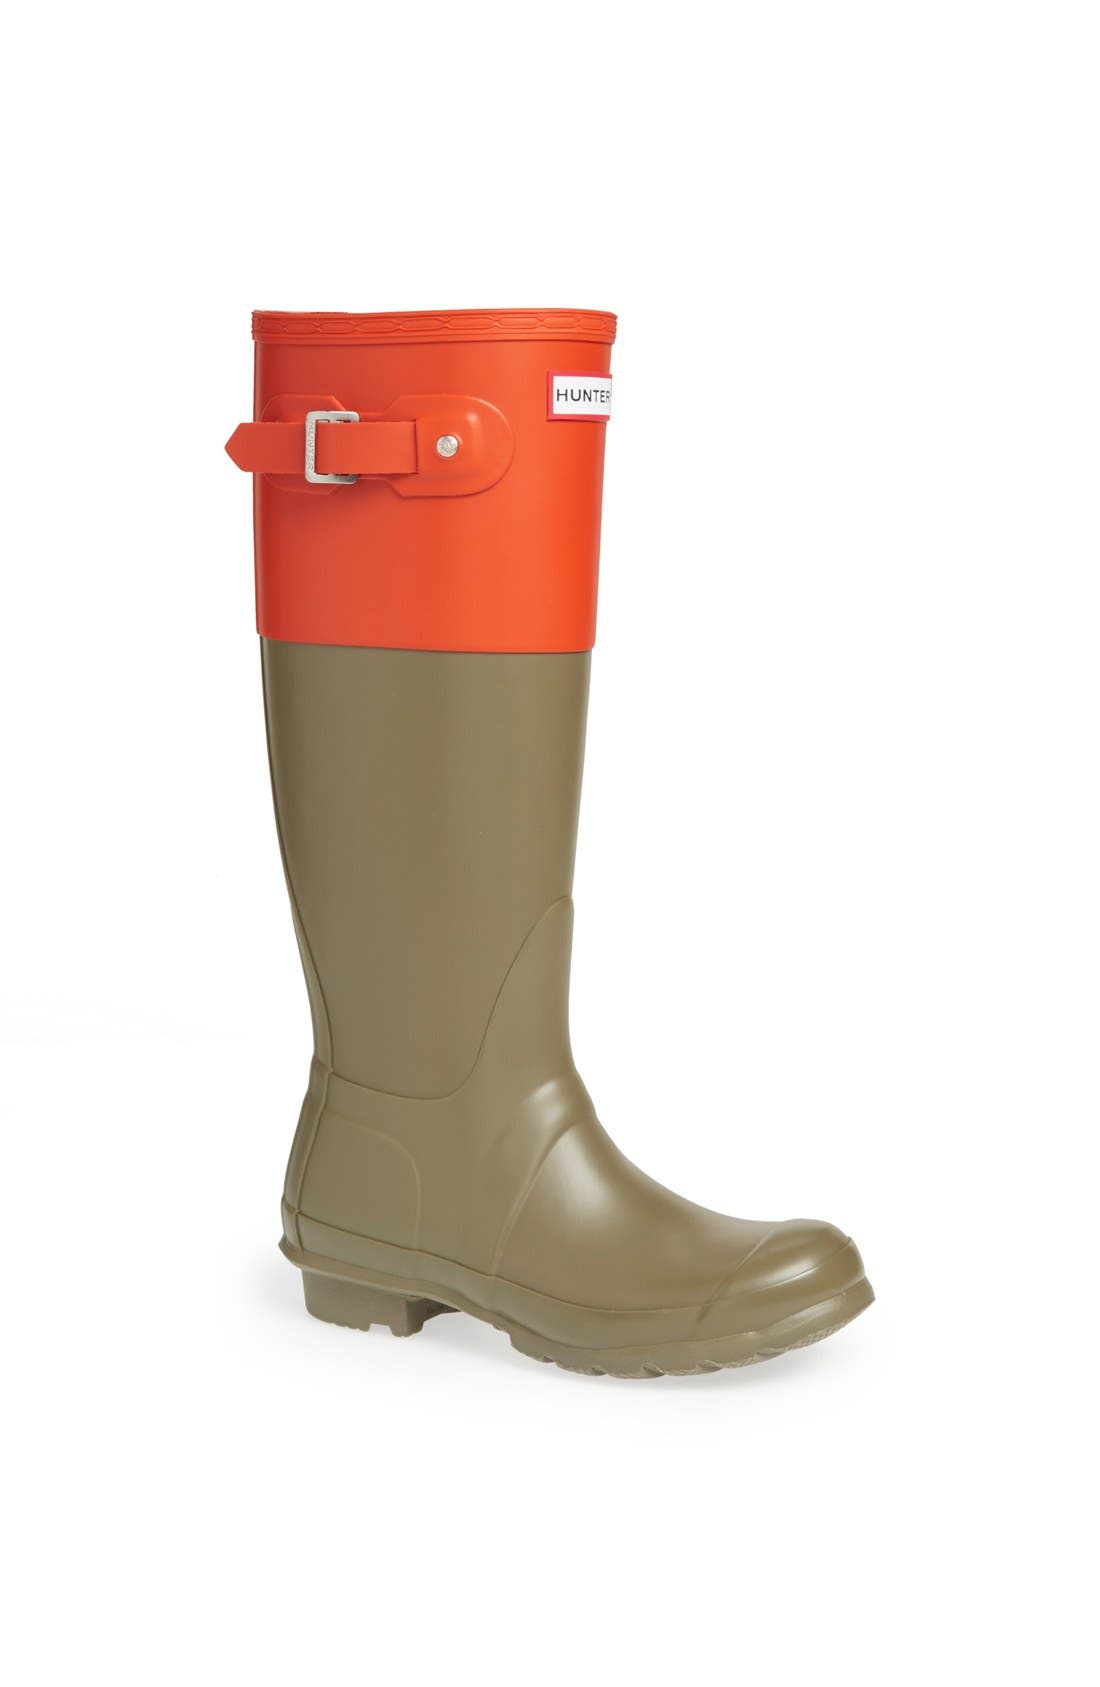 Main Image - Hunter 'Original Colorblock' Rain Boot (Women)